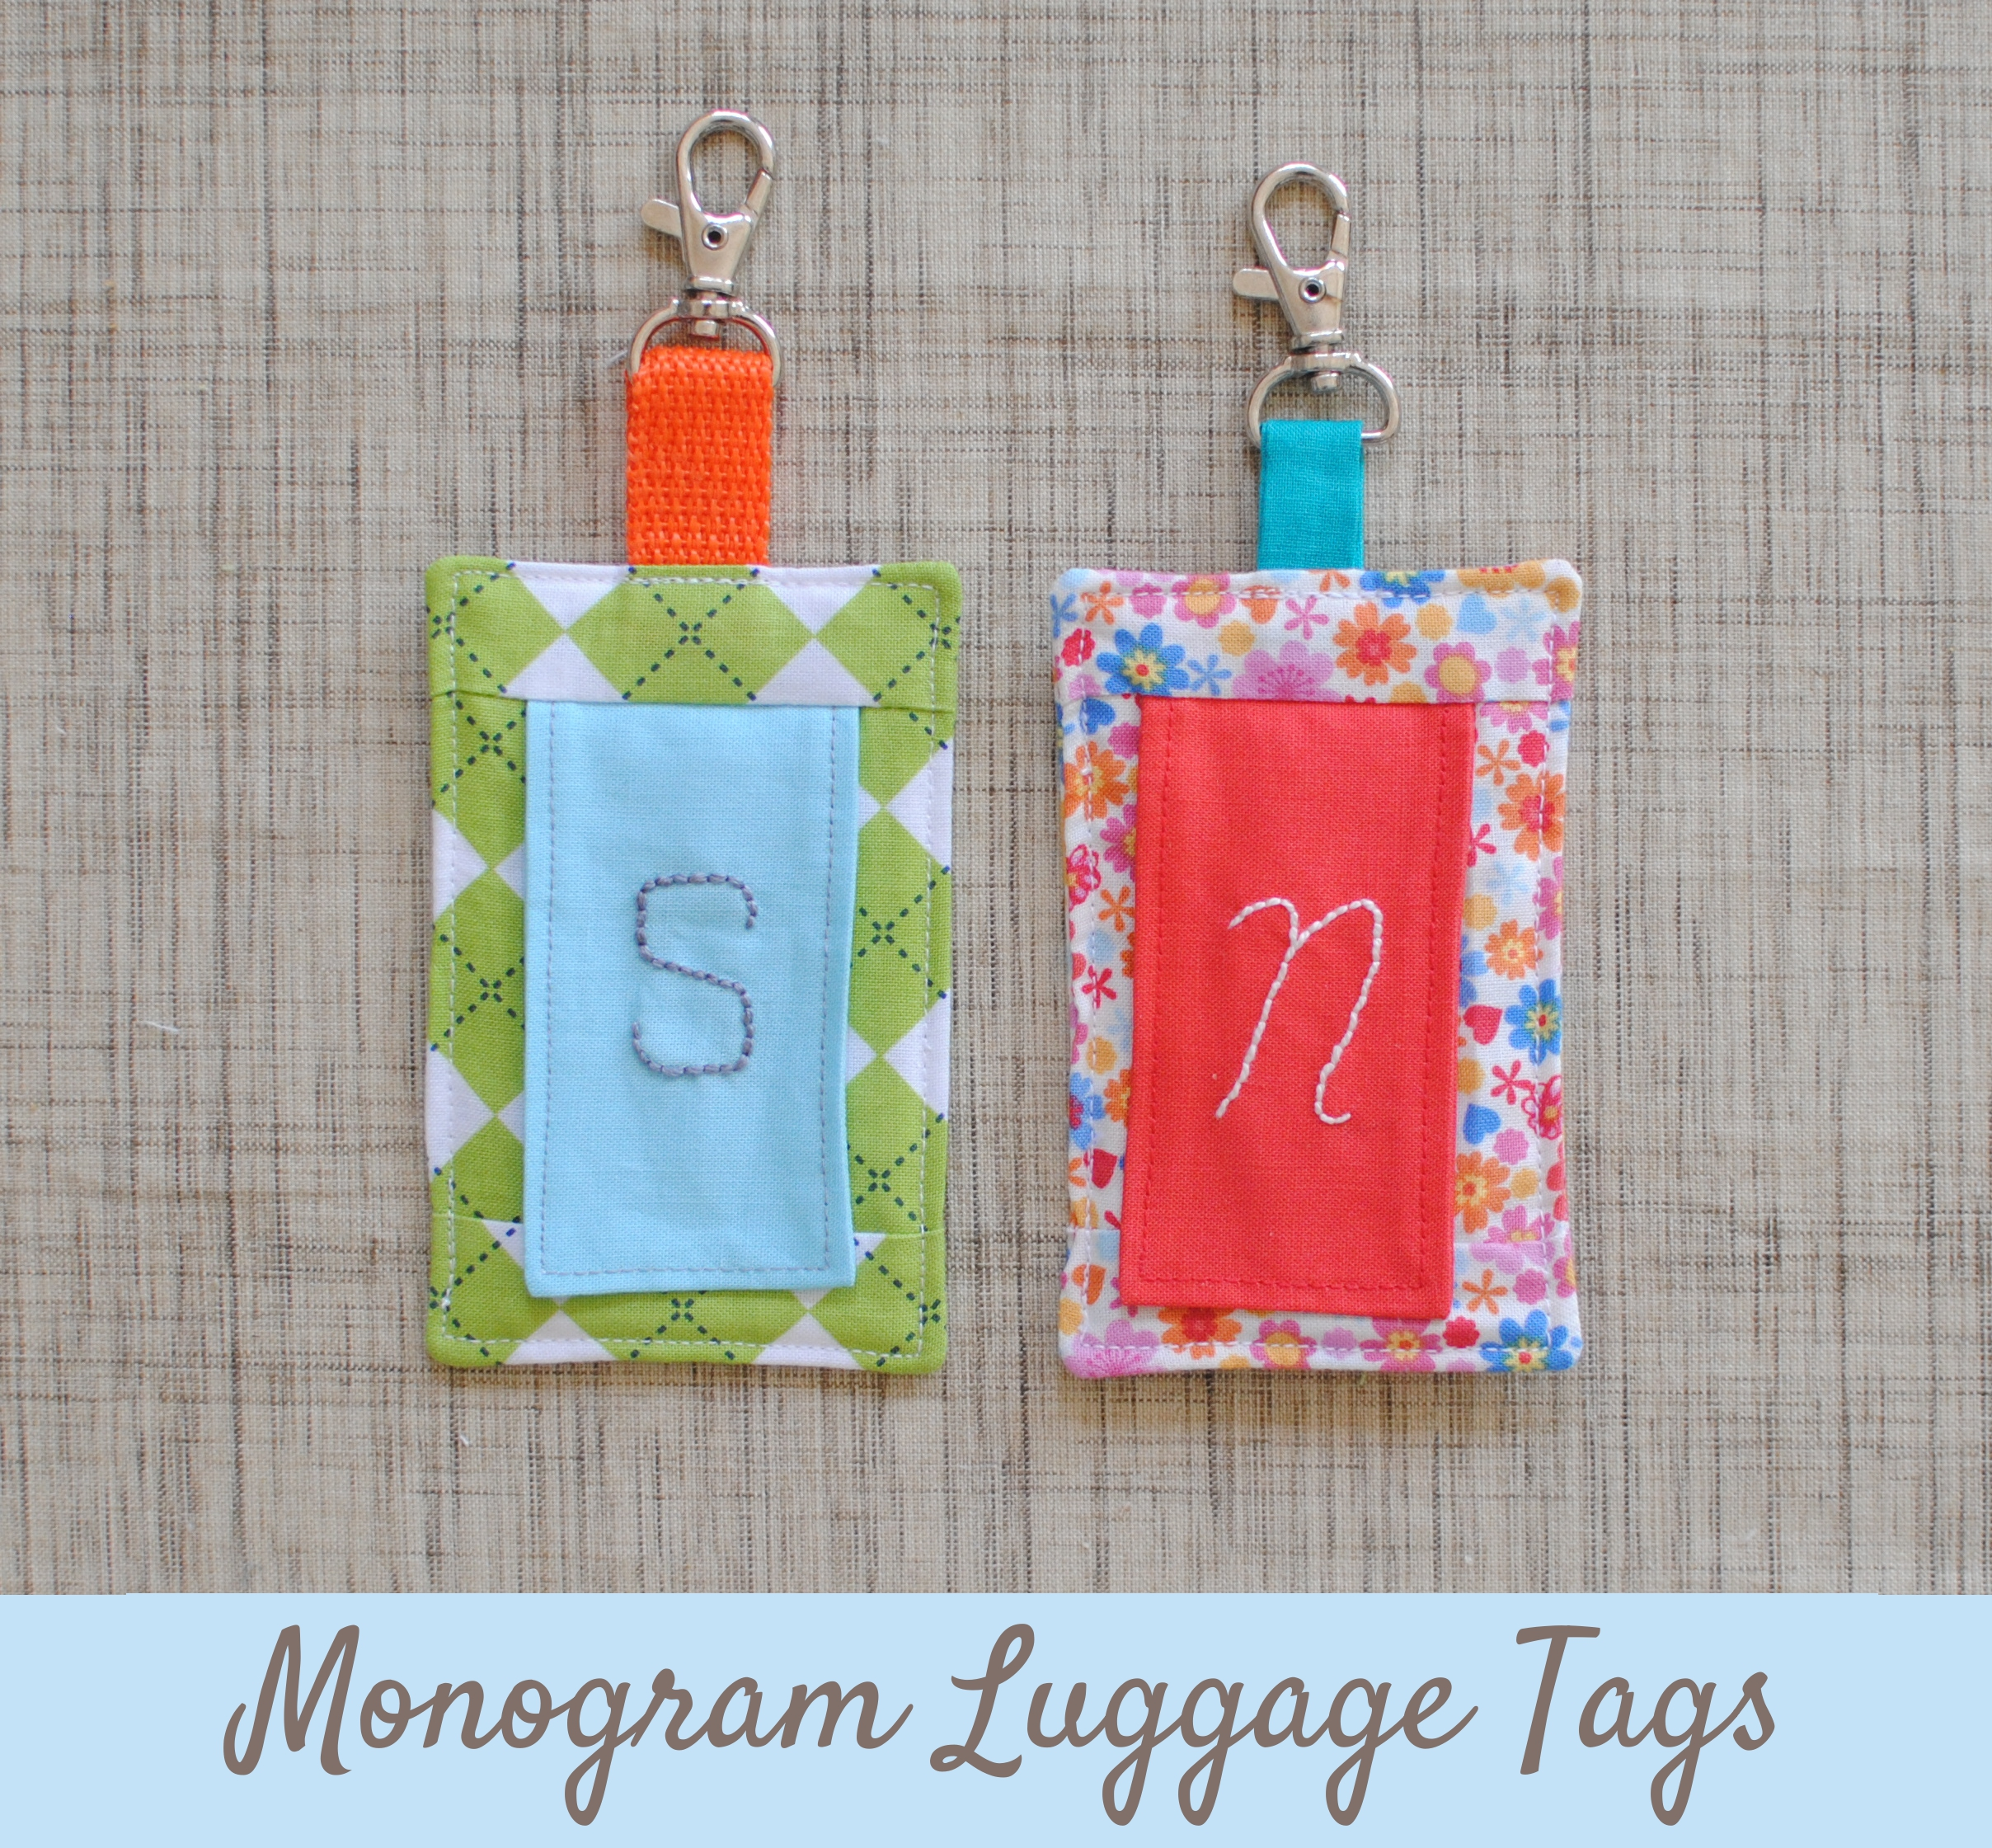 Clover & Violet — Embroidered Monogram Luggage Tags {Tutorial}